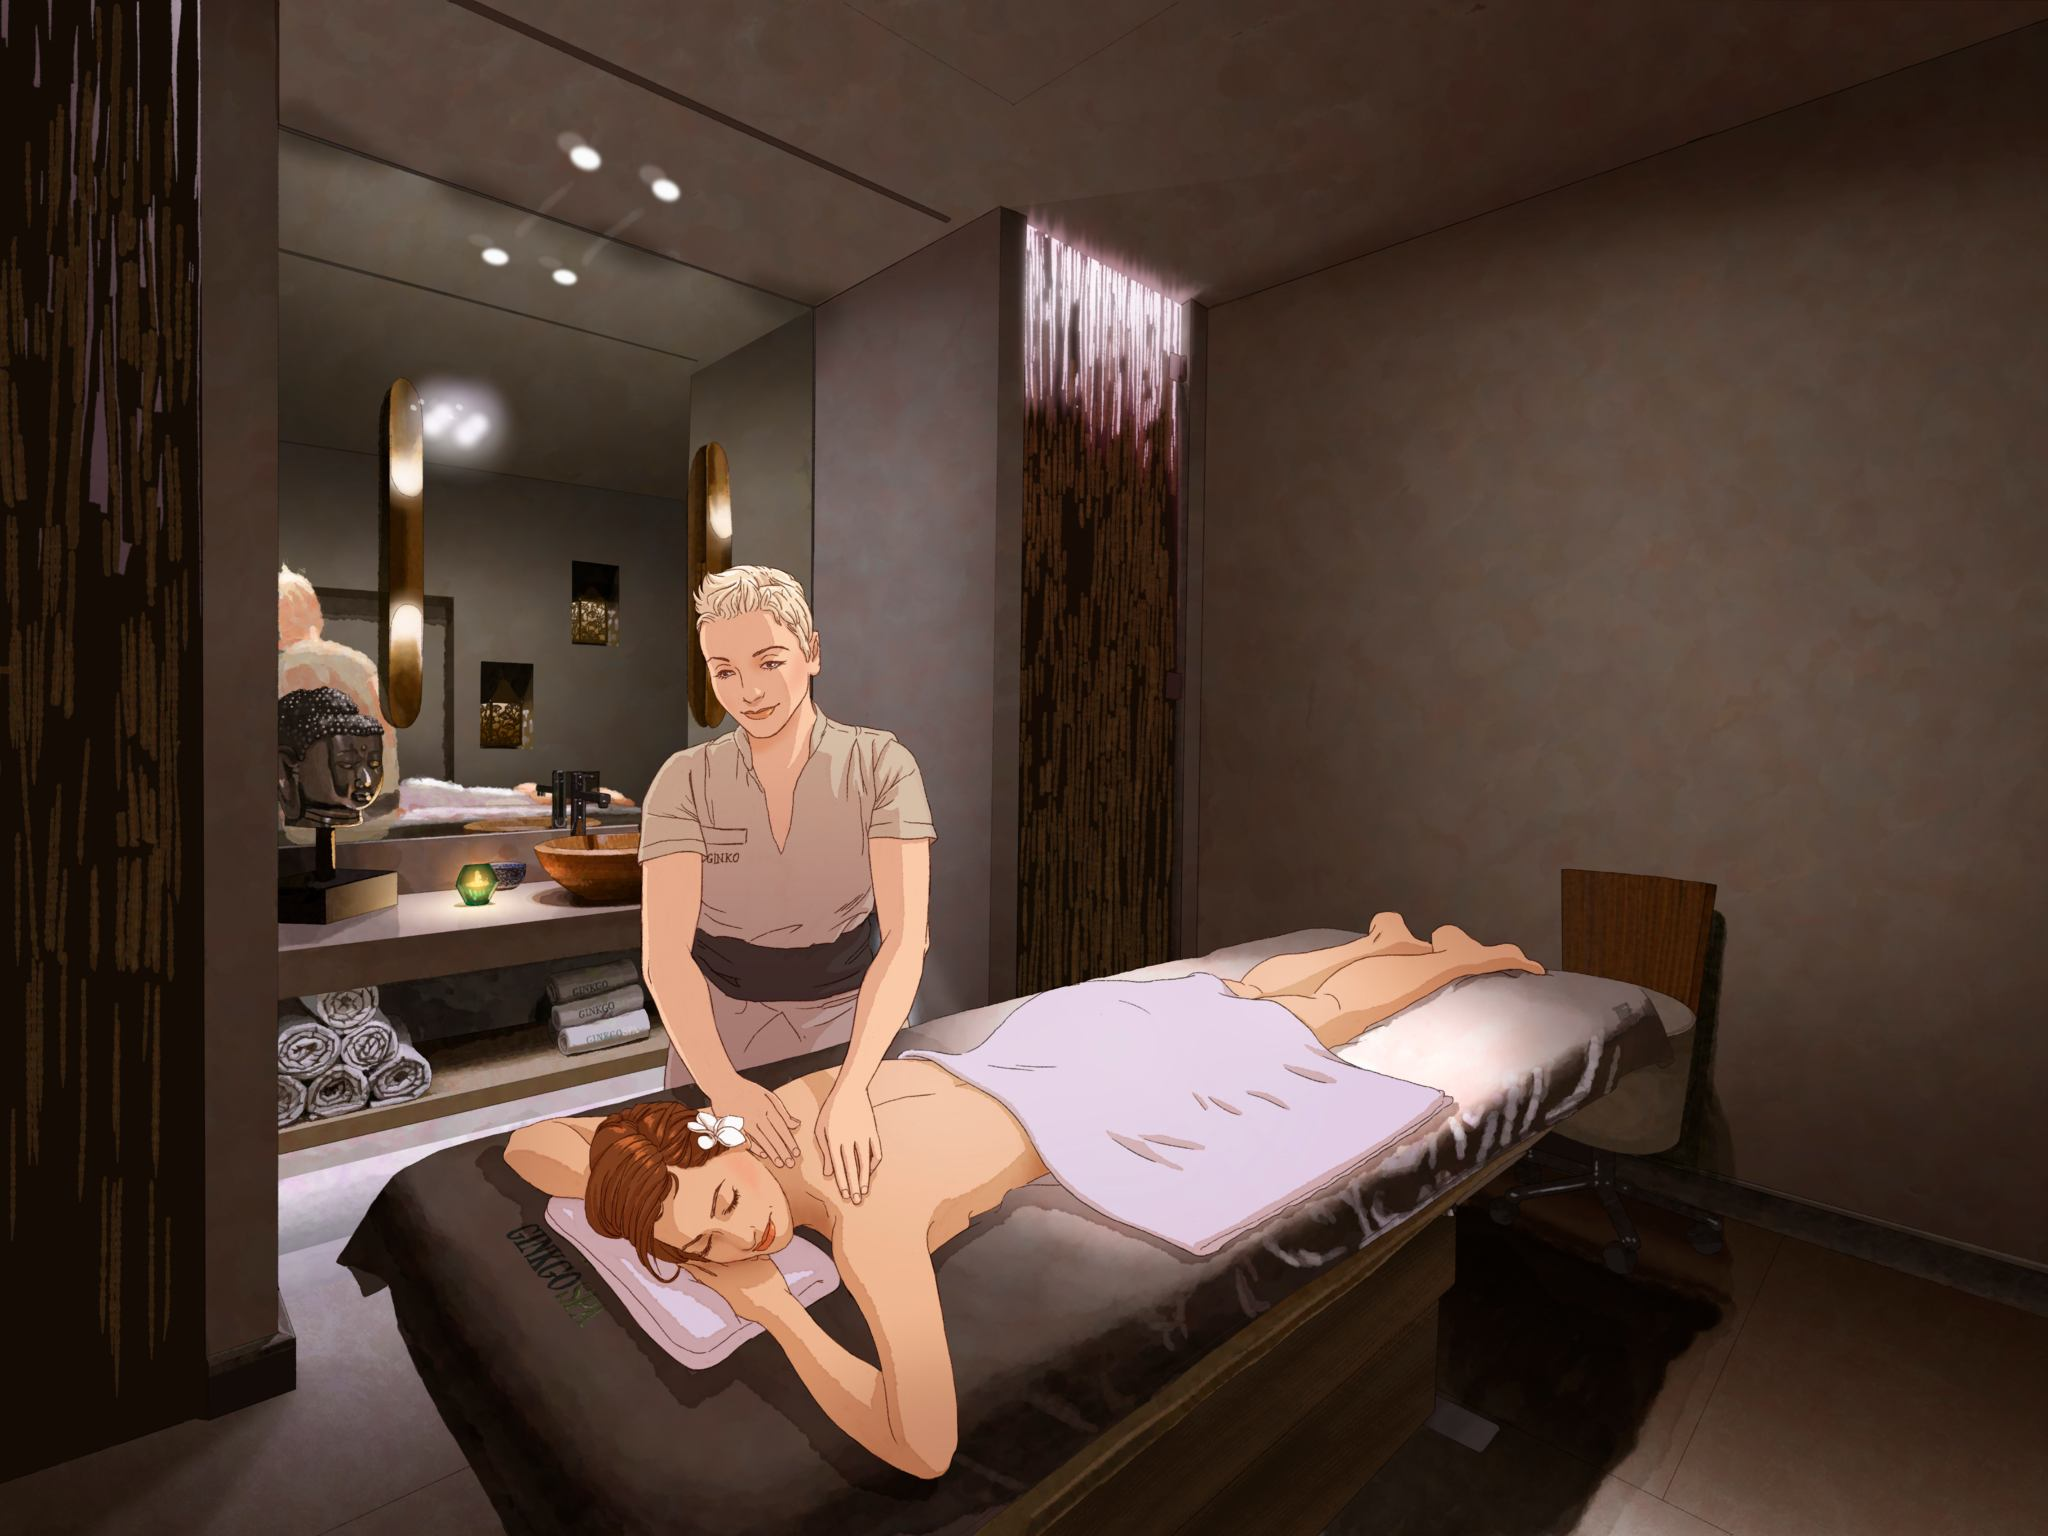 massage therapist massaging woman lying on massage table